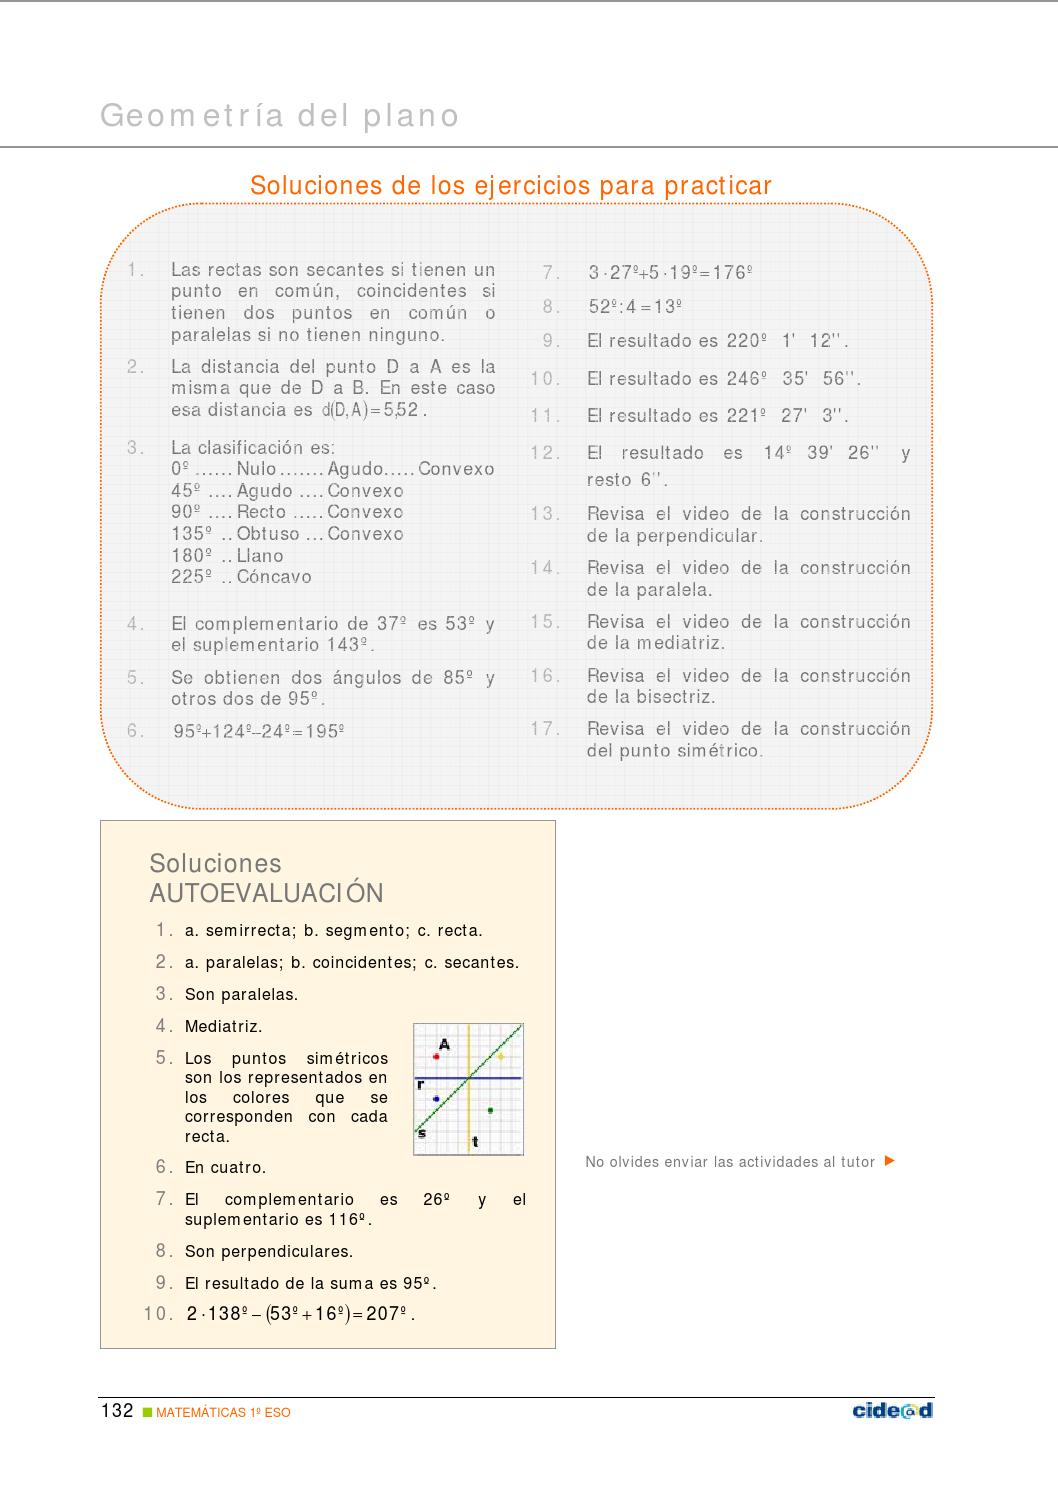 Libro Digital Anaya 1 Eso Libro De Texto Matematicas 1 Eso By Red Educativa Digital